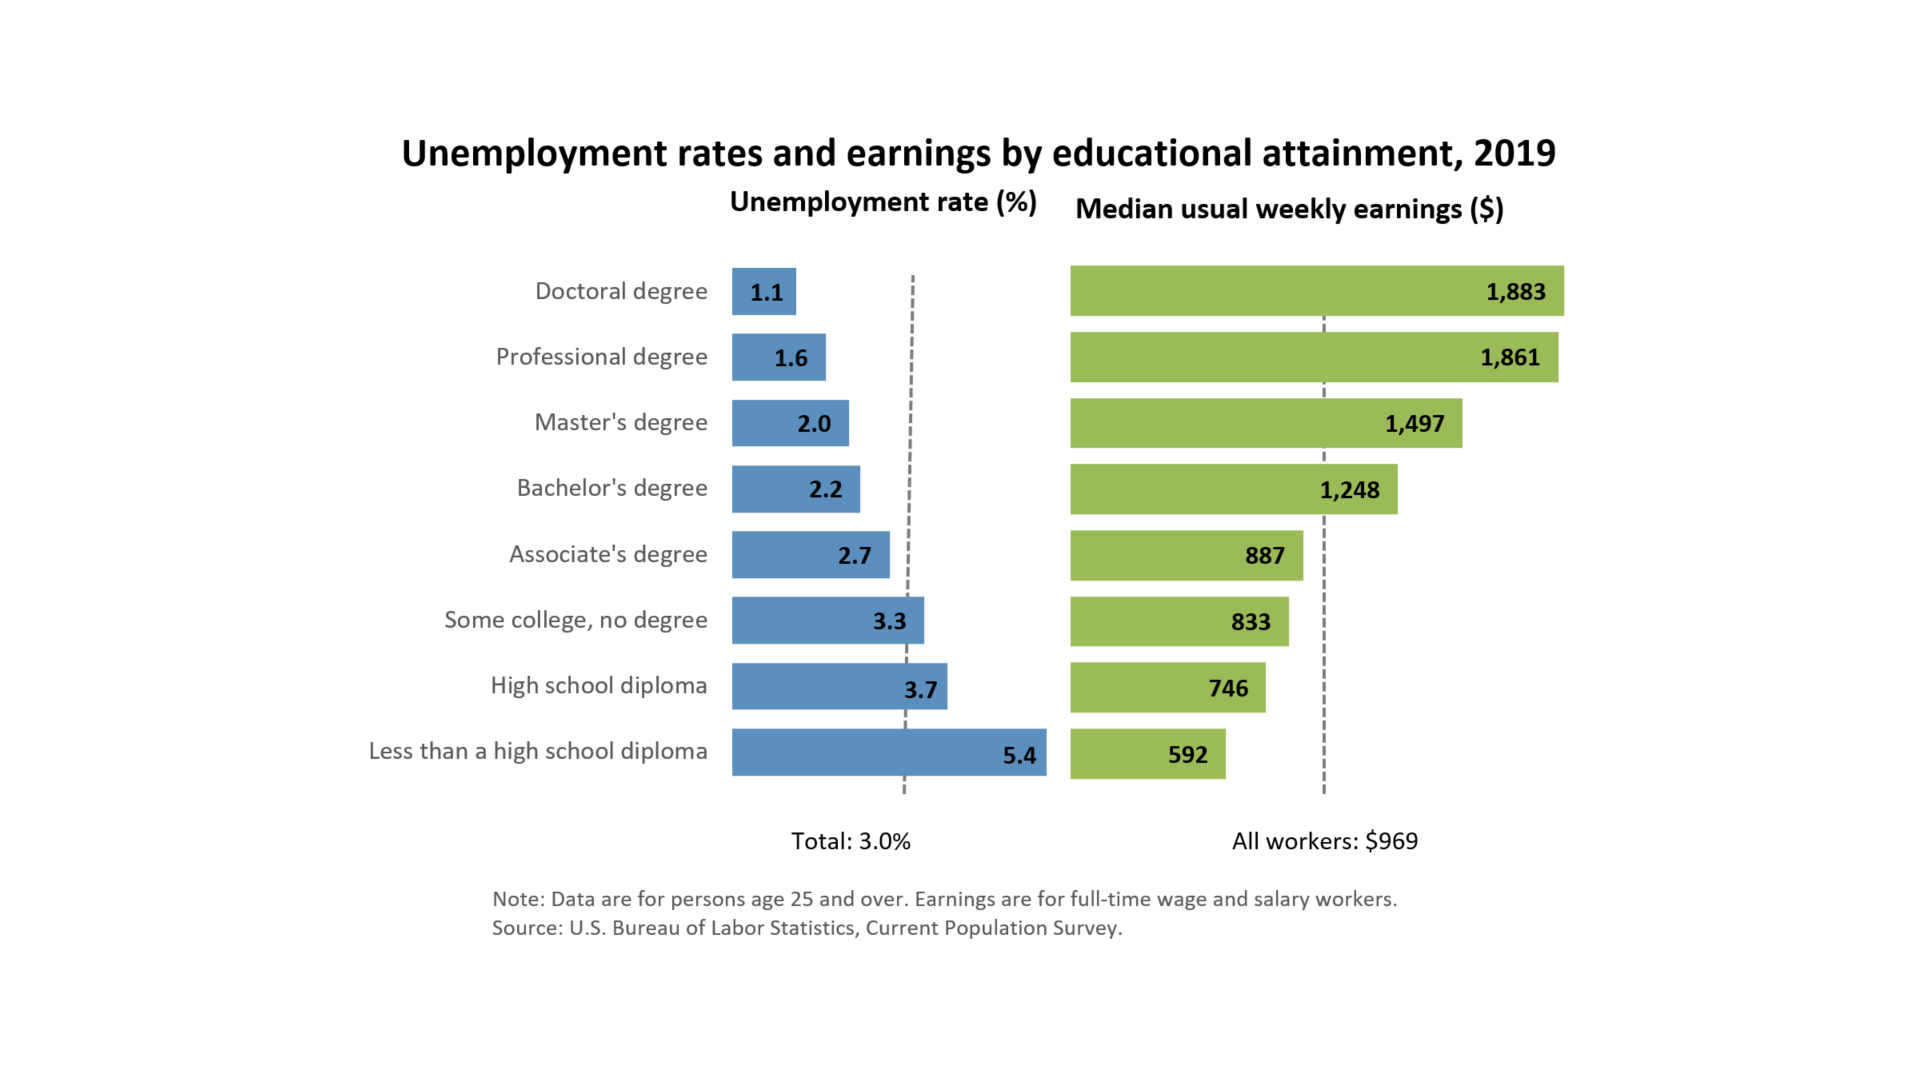 Unemployment rates and earnings by educational attainment